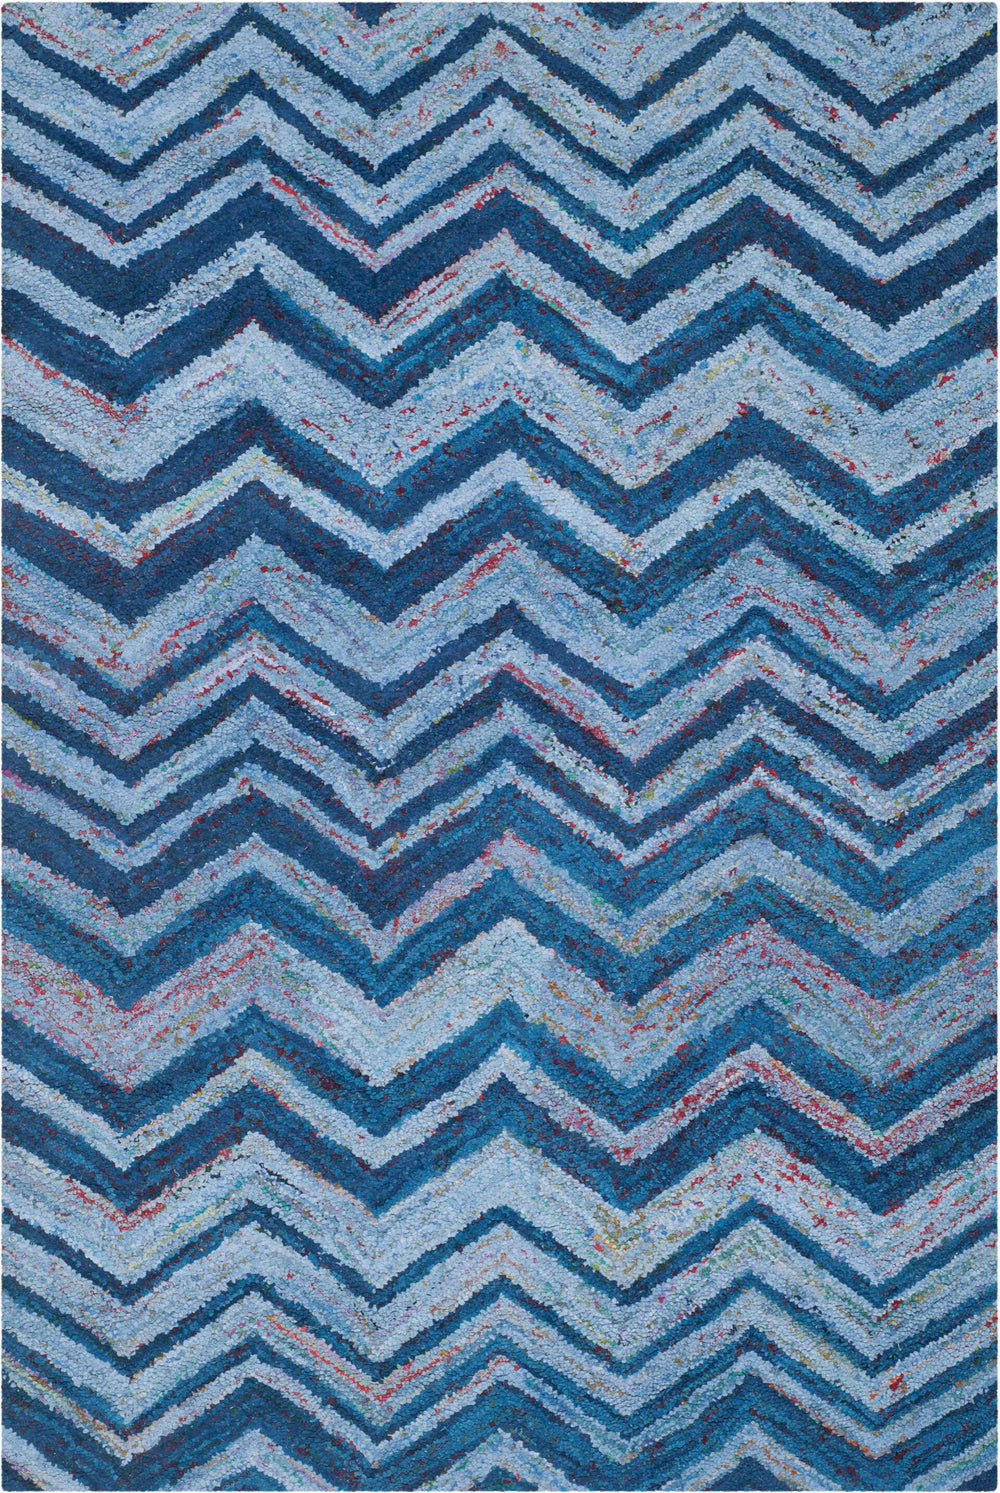 Safavieh Nantucket NAN145 Area Rug